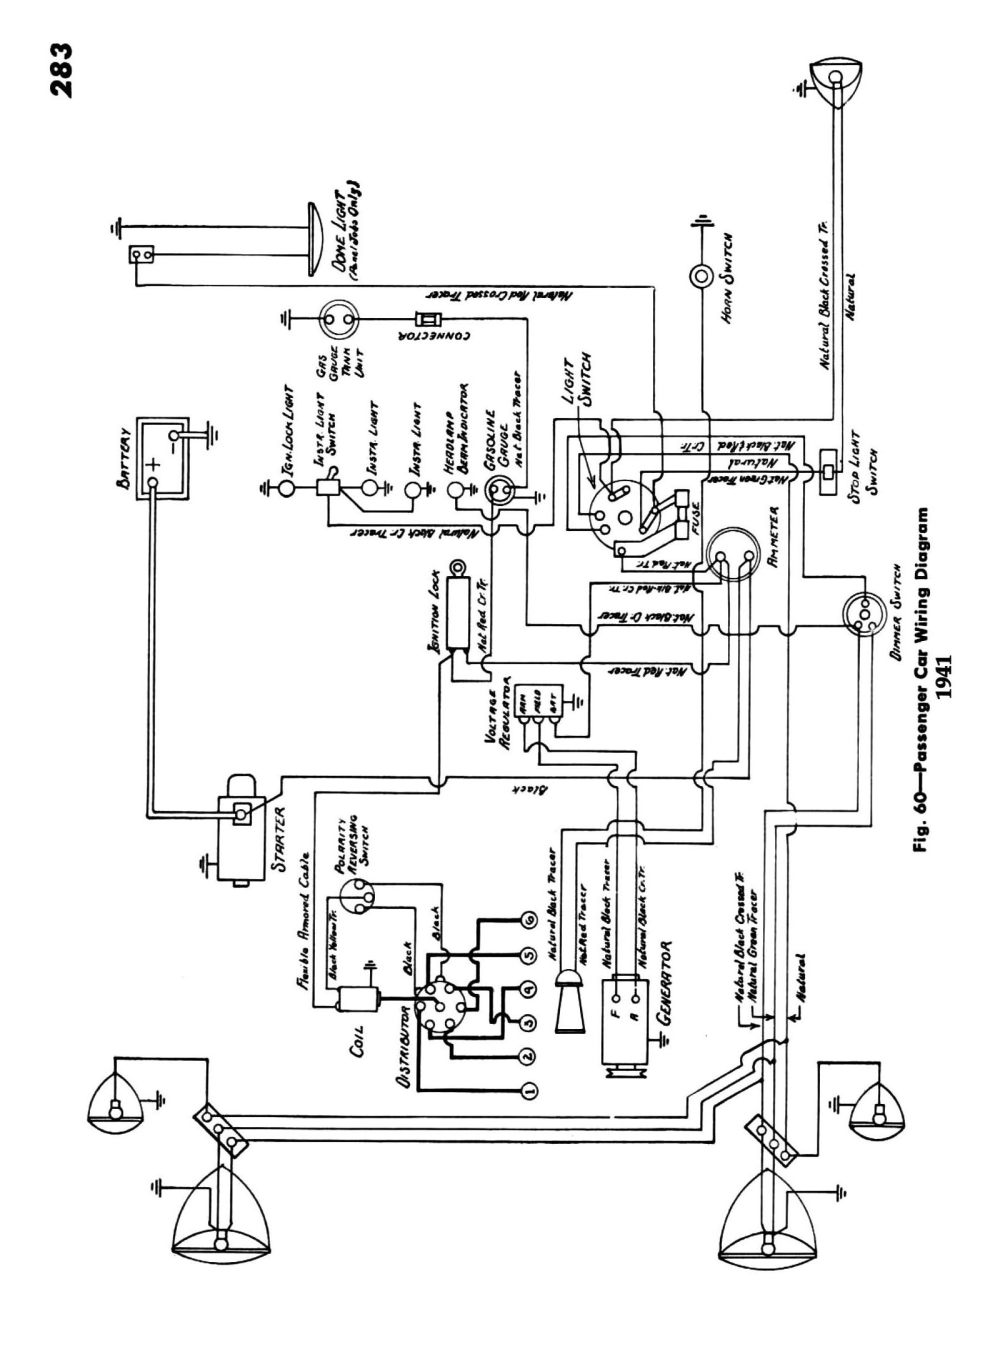 medium resolution of 46 chevy wiring diagram wiring diagram technic 1961 chevy apache wiring diagram apache wiring diagram